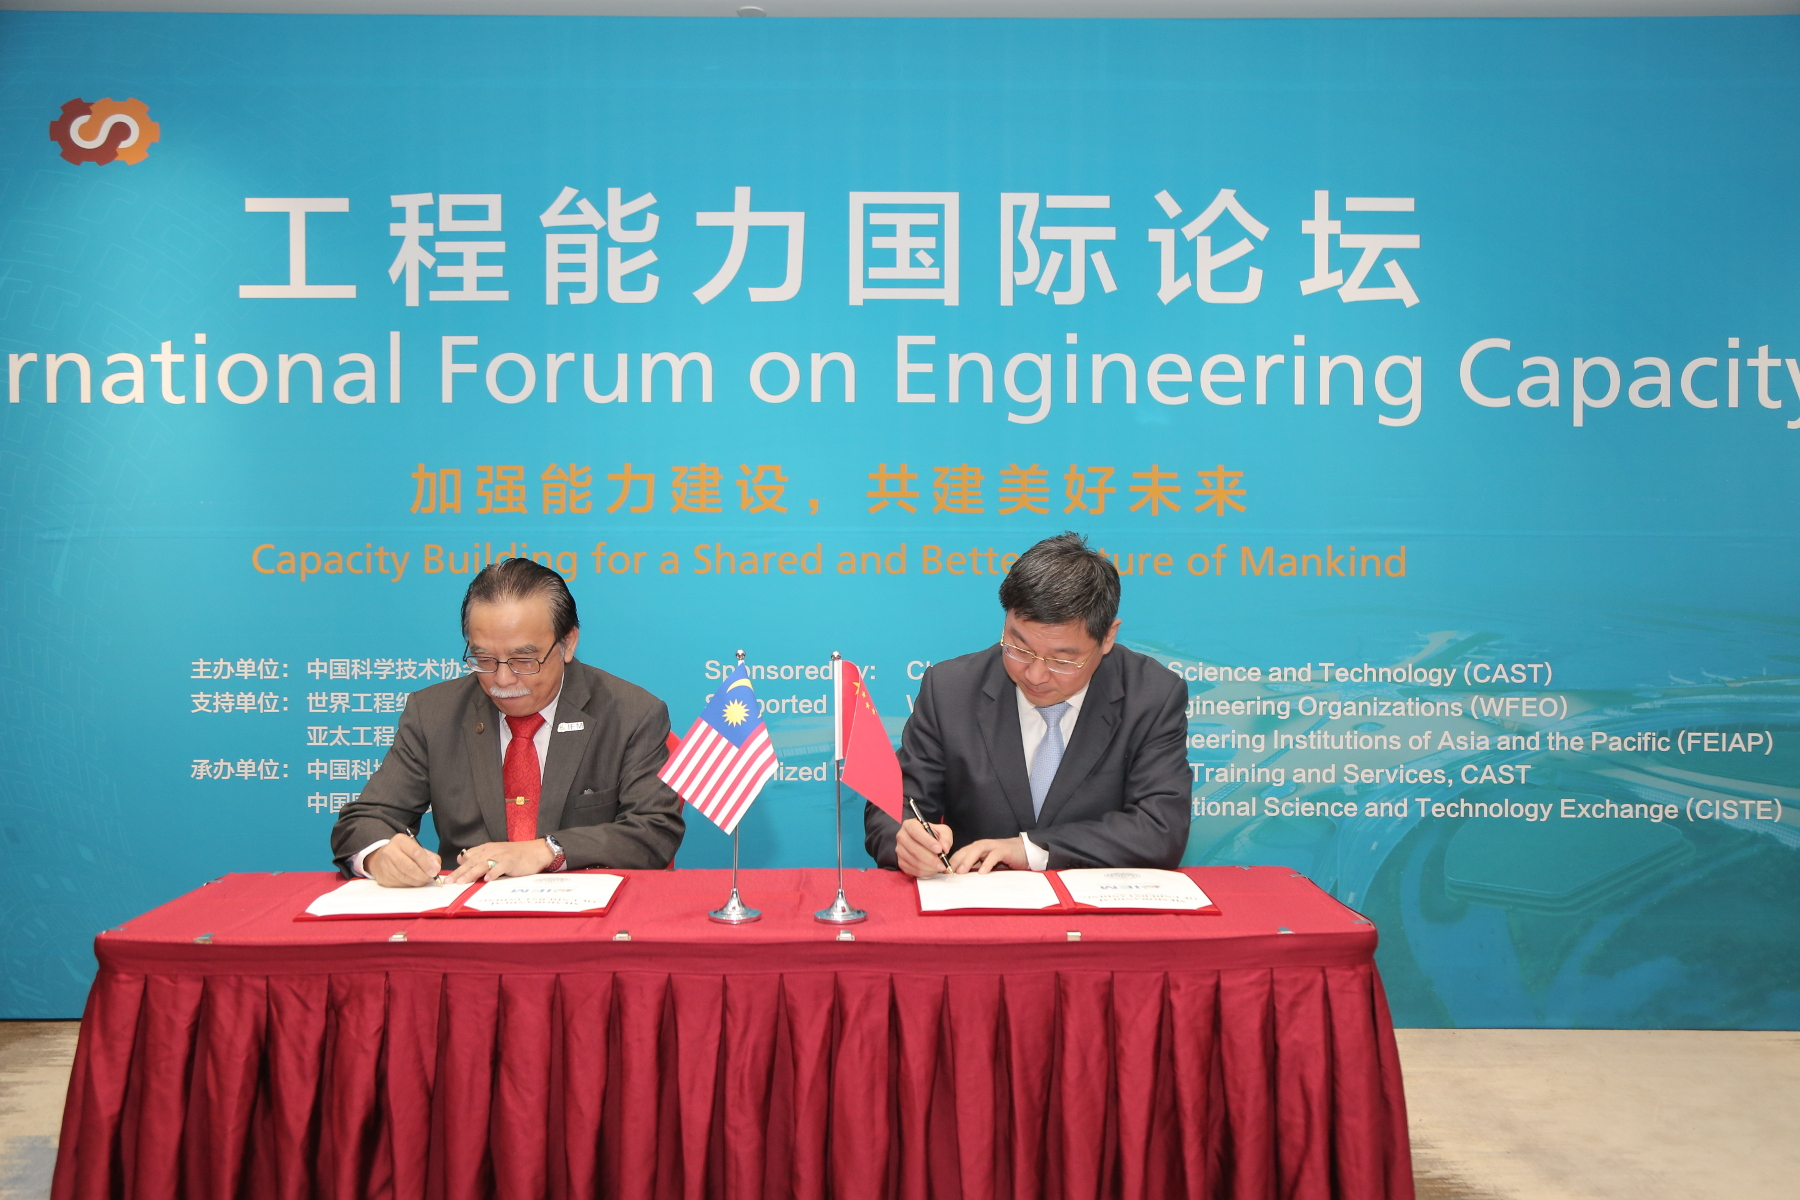 MOU between Institution of Engineers, Malaysia and CAST